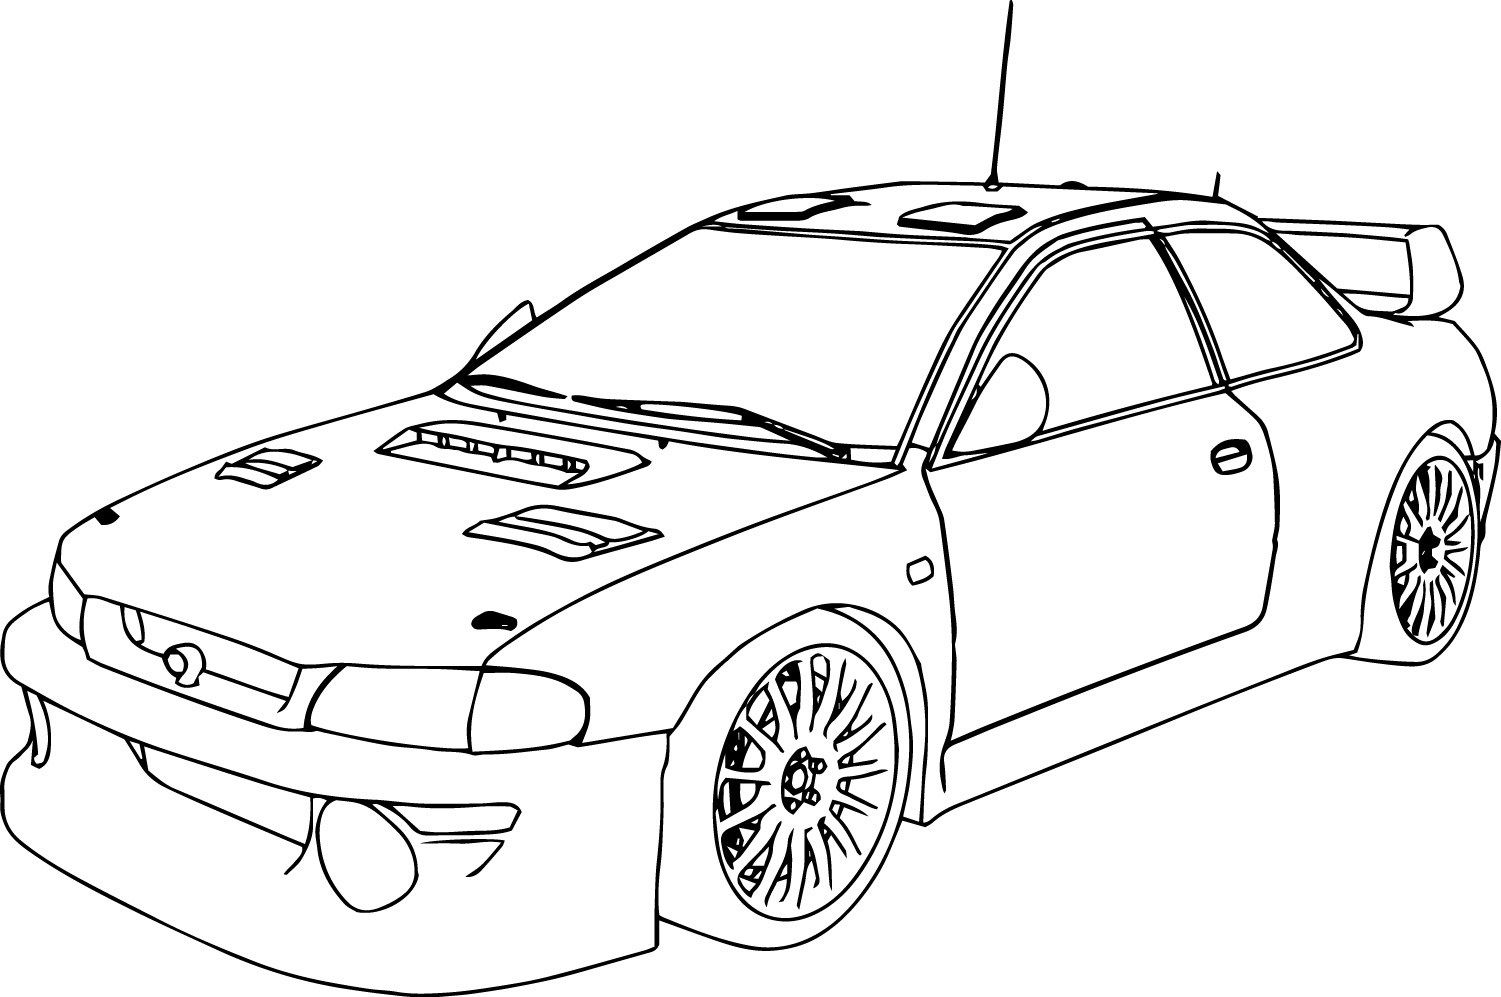 car for coloring cars free to color for kids cars kids coloring pages for car coloring 1 1